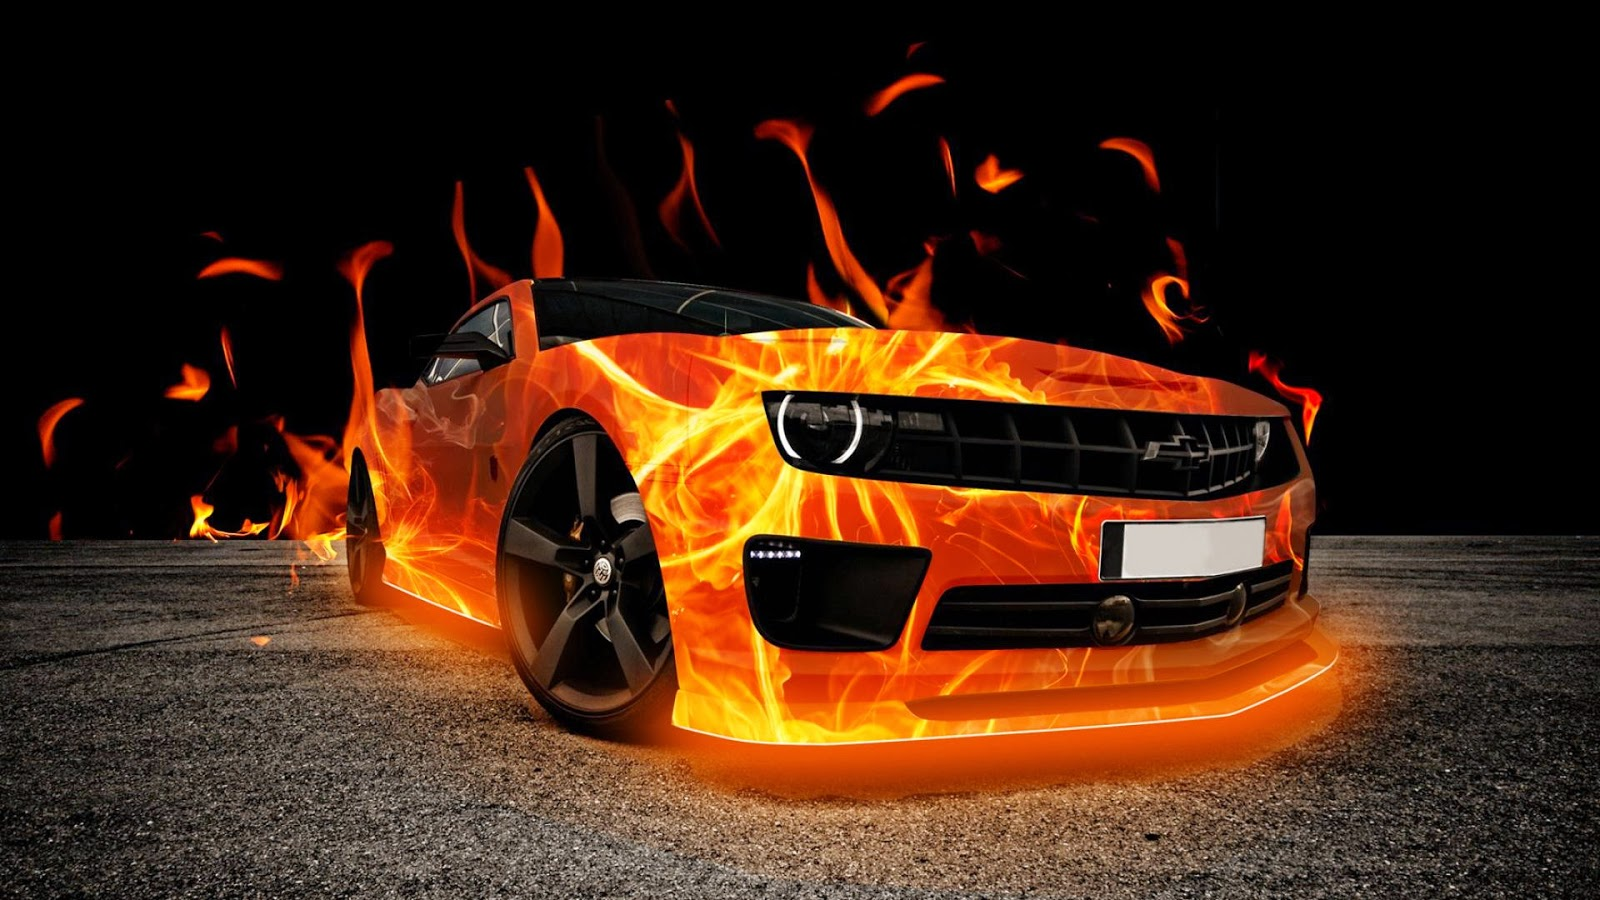 Fire3dwallpapersofcarsfordesktop2jpg 1600x900